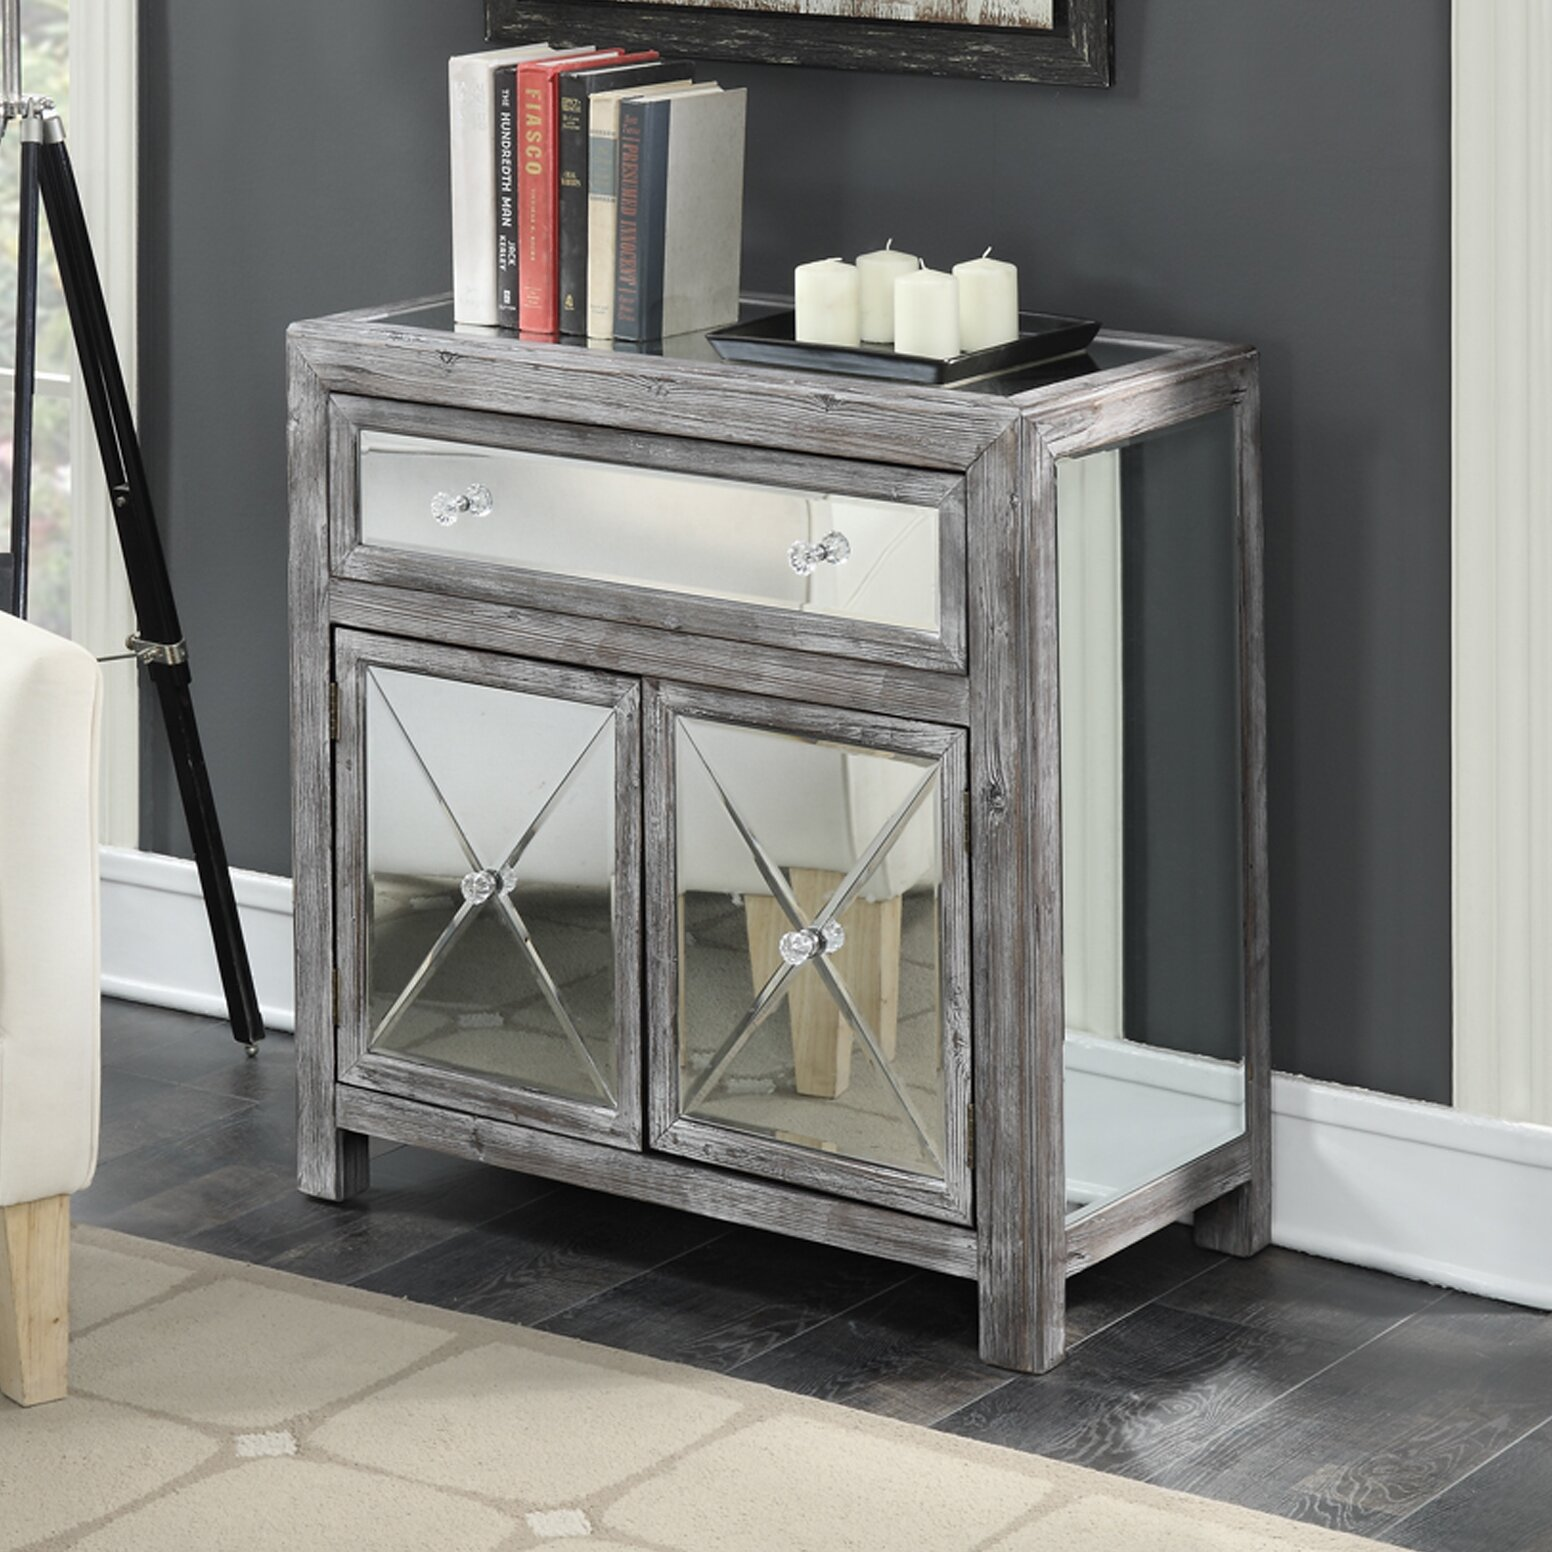 Convenience concepts gold coast vineyard mirrored cabinet for Bathroom cabinets gold coast